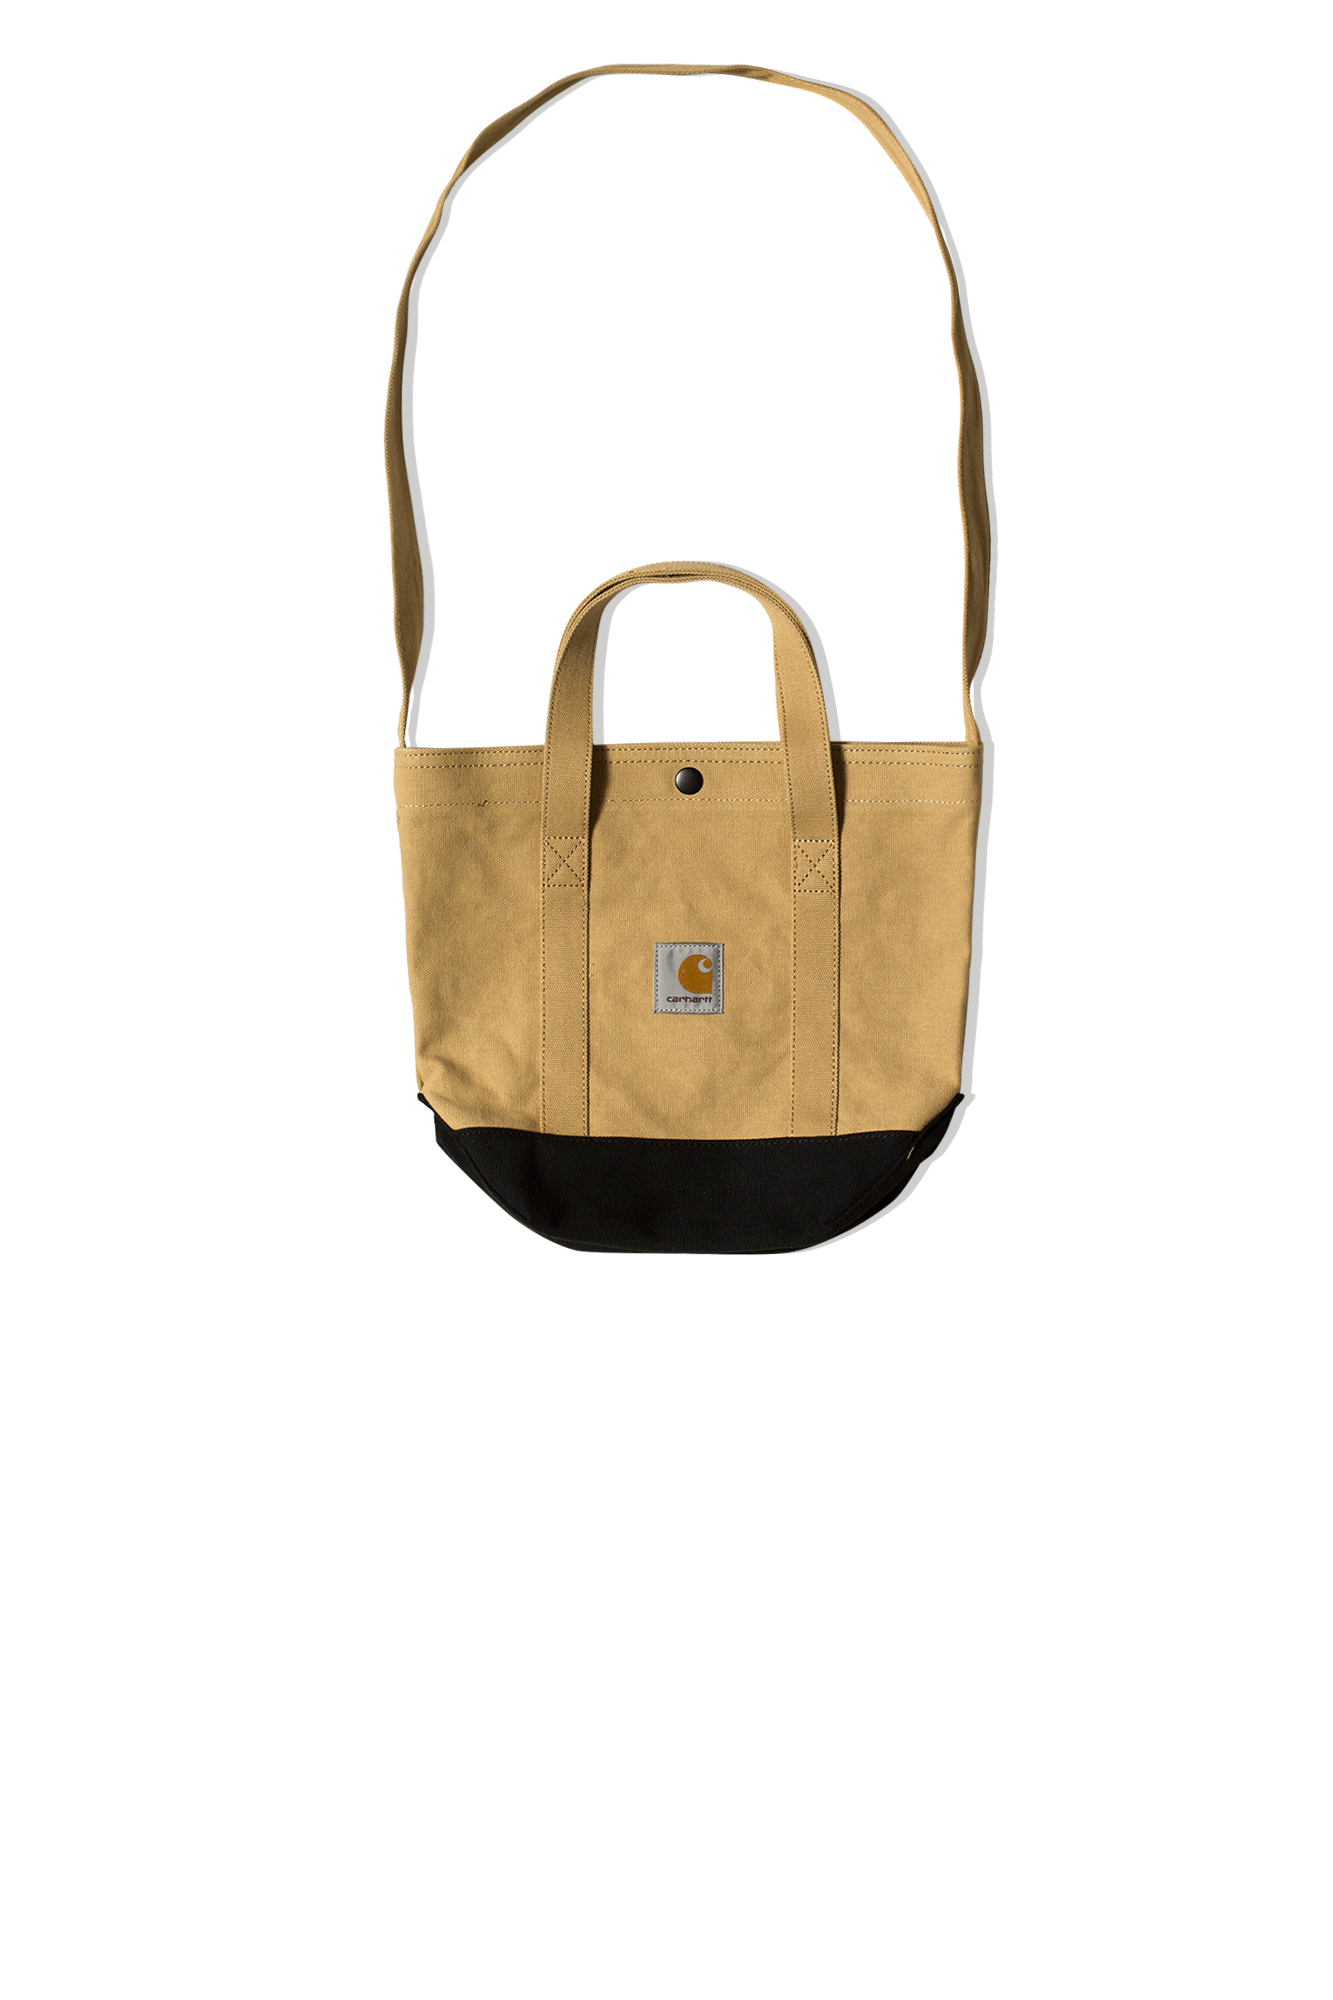 Carhartt Totes Canvas Small Tote Bag Brown I028886.06#000#07E.90#OS - One Block Down